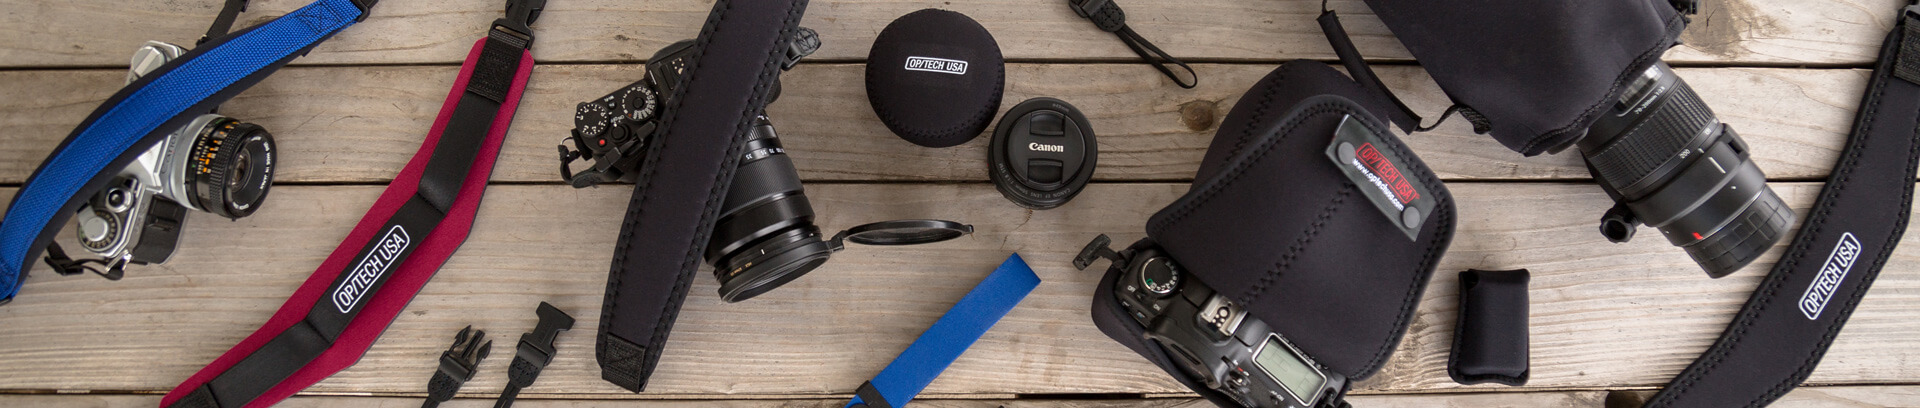 OP/TECH USA straps and pouches to fit cameras and lenses